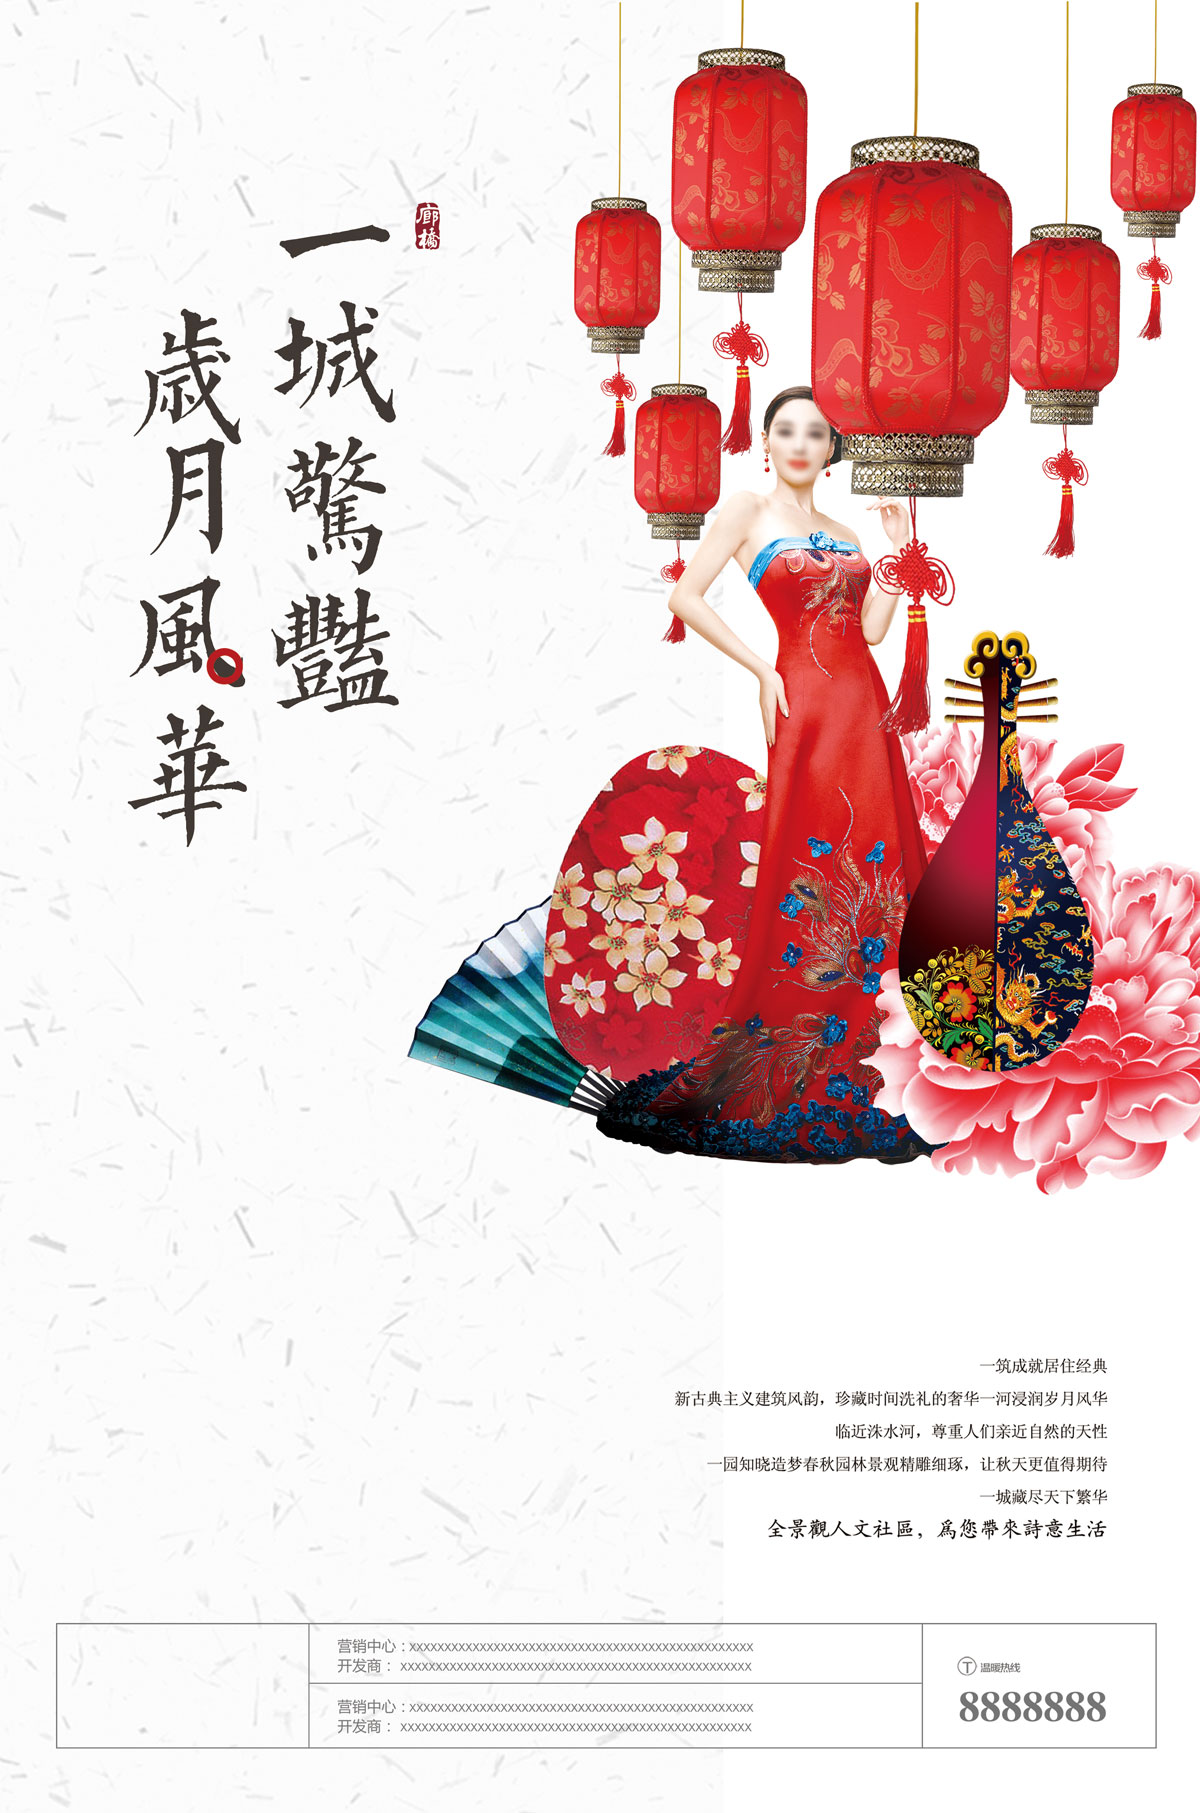 chinesefontdesign.com 2017 10 14 10 24 51 371755 Chinese style real estate promotion poster design   China PSD File Free Download the years elegance the PSD the background of real estate real estate posters real estate opened peony new Chinese style lanterns jiangnan real estate ink painting fan Chinese wind Chinese real estate poster Chinese real estate beauty a city